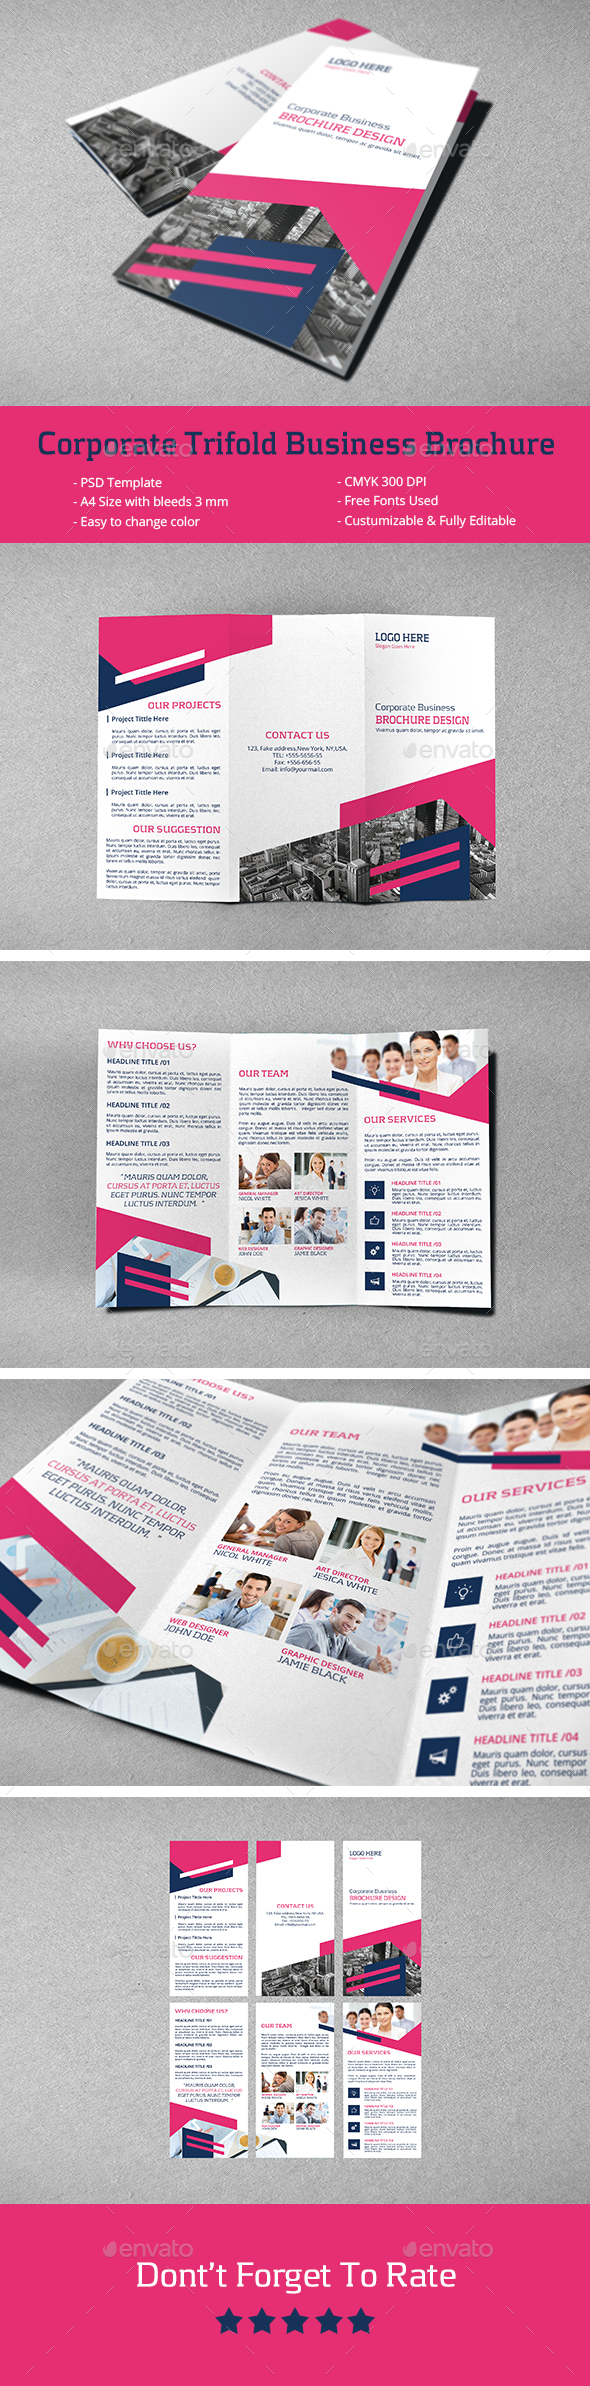 Corporate Trifold Business Brochure - Corporate Brochures